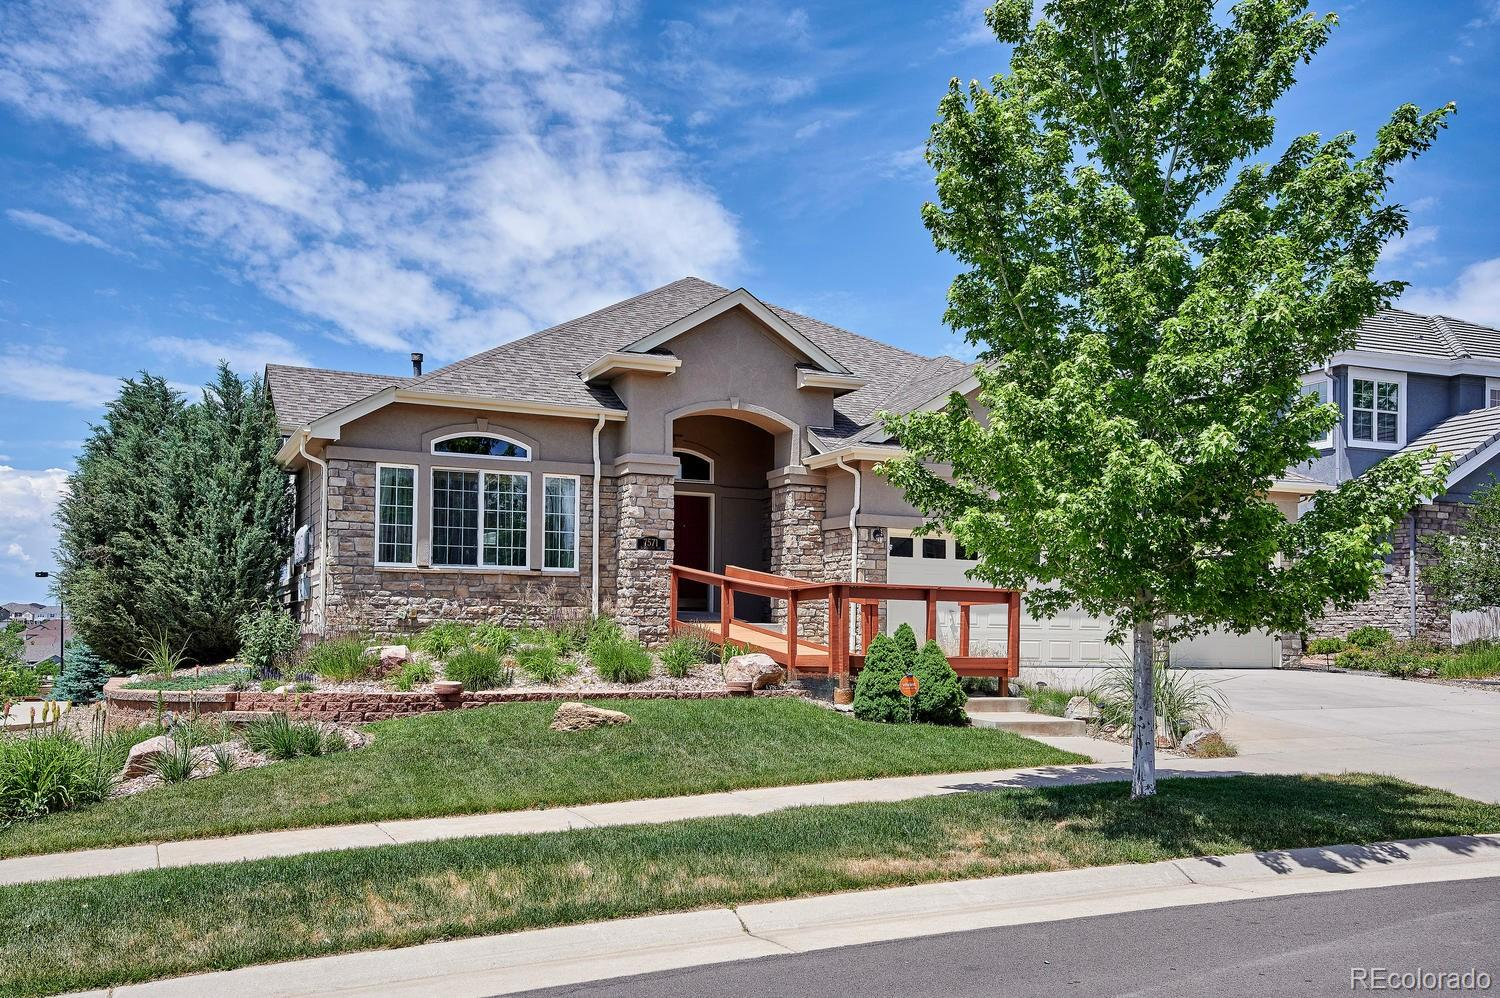 7571 S Duquesne Way Property Photo - Aurora, CO real estate listing